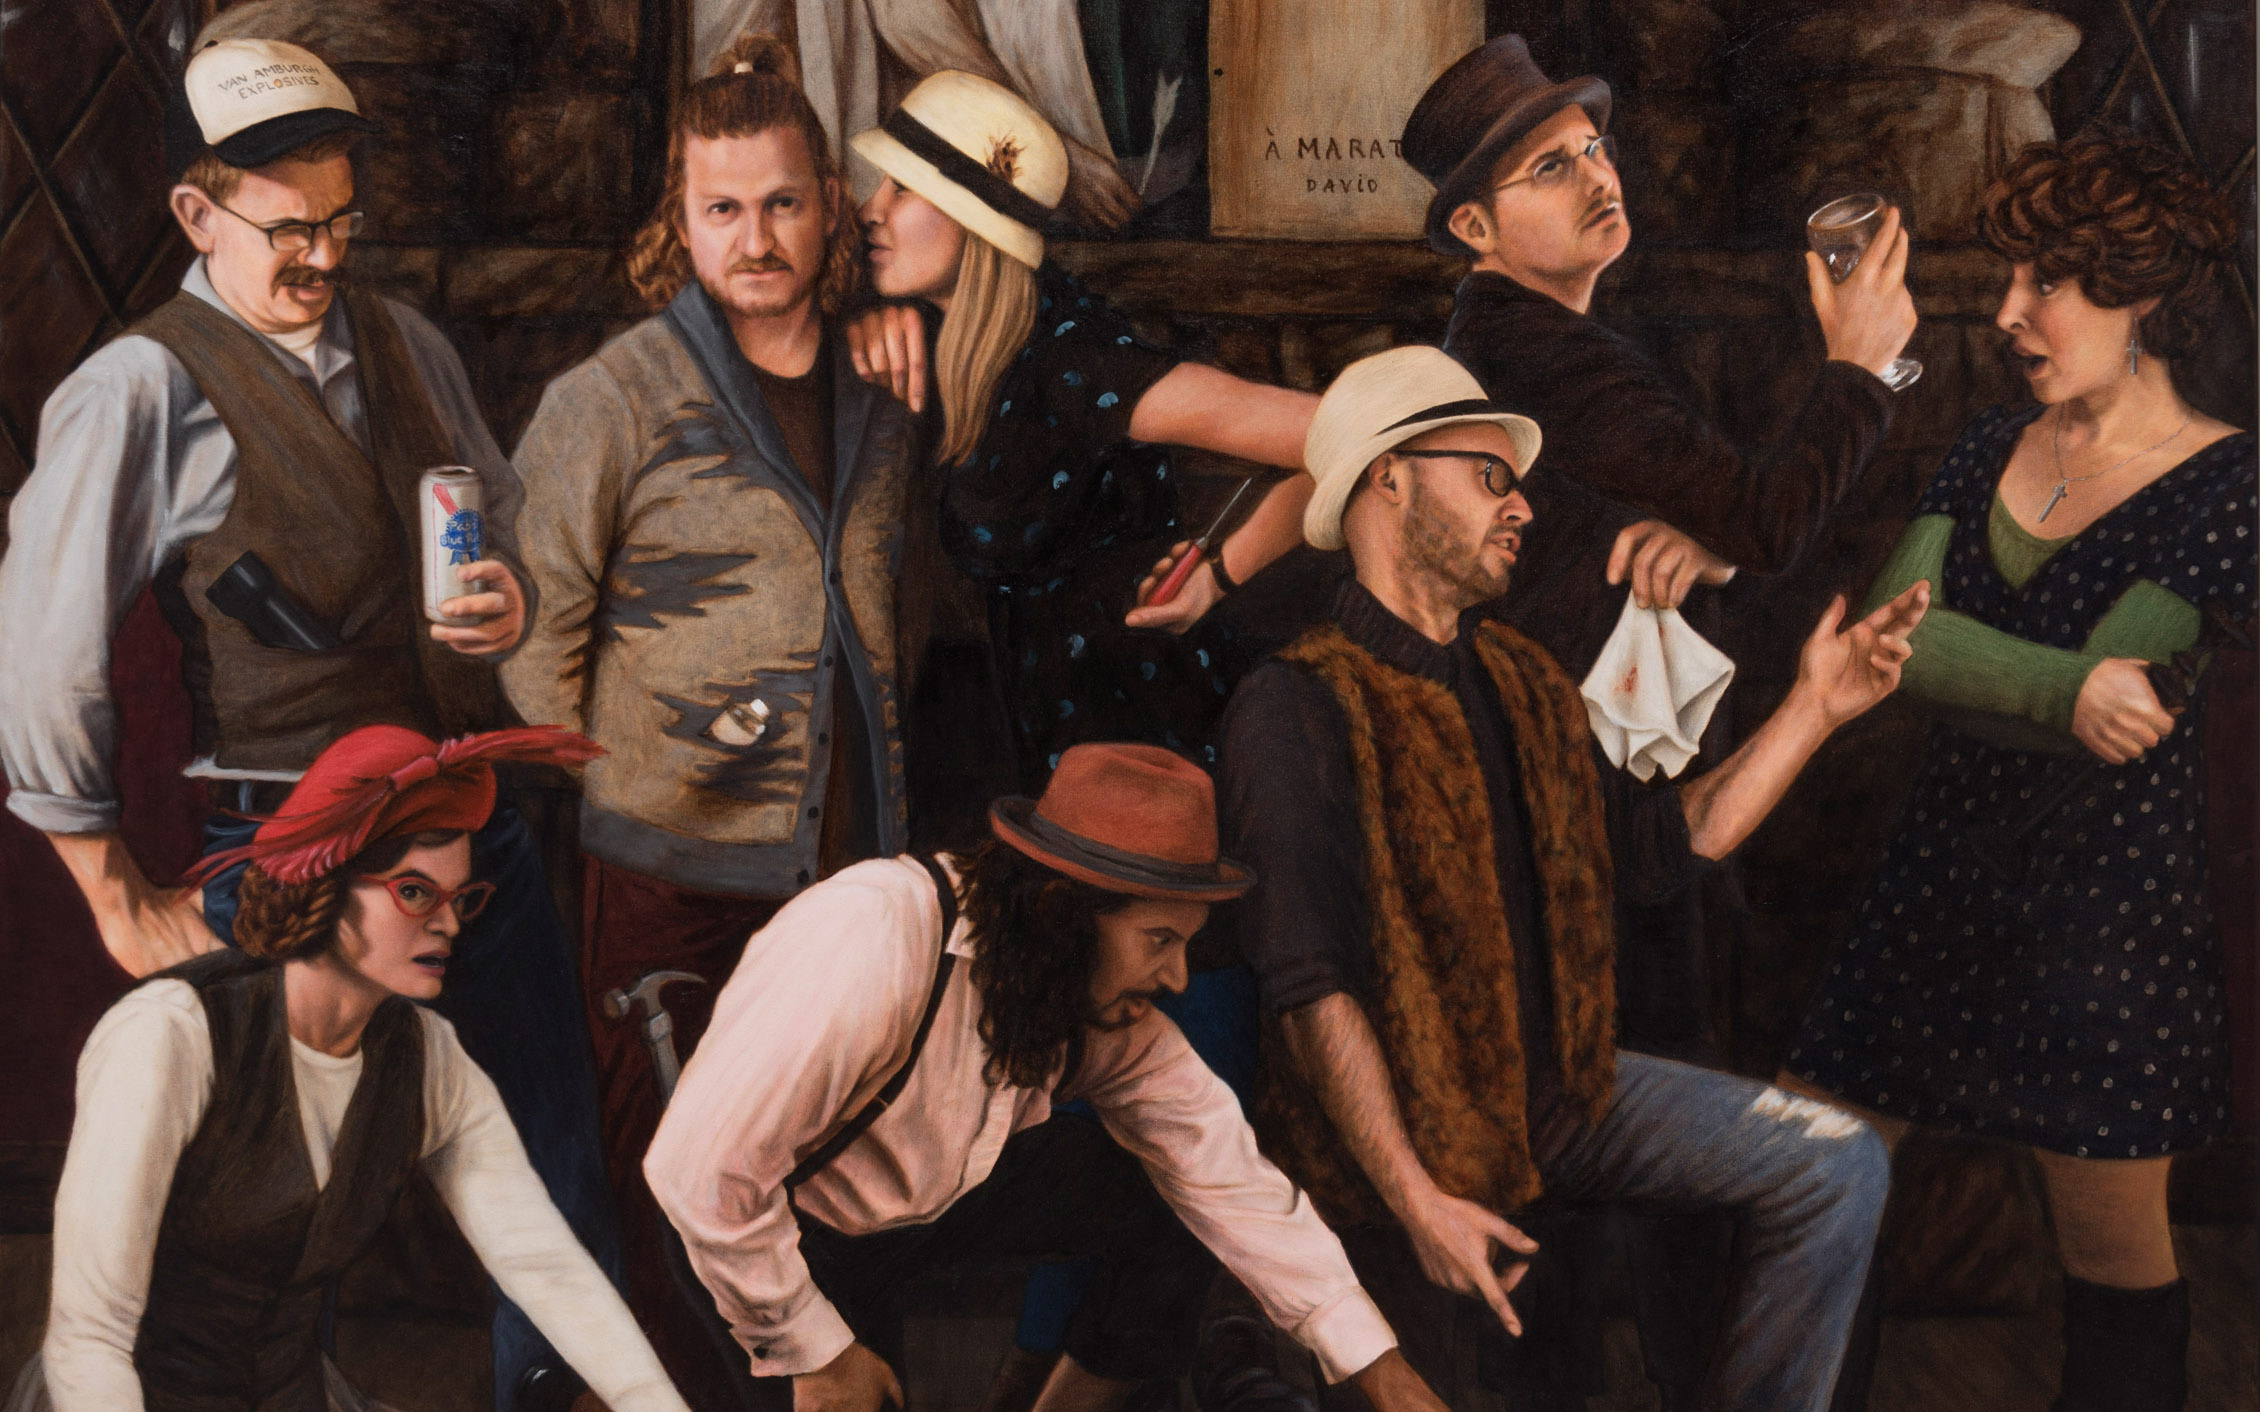 Image: Eight individuals, both males and females, at a bar in various poses and drinking.